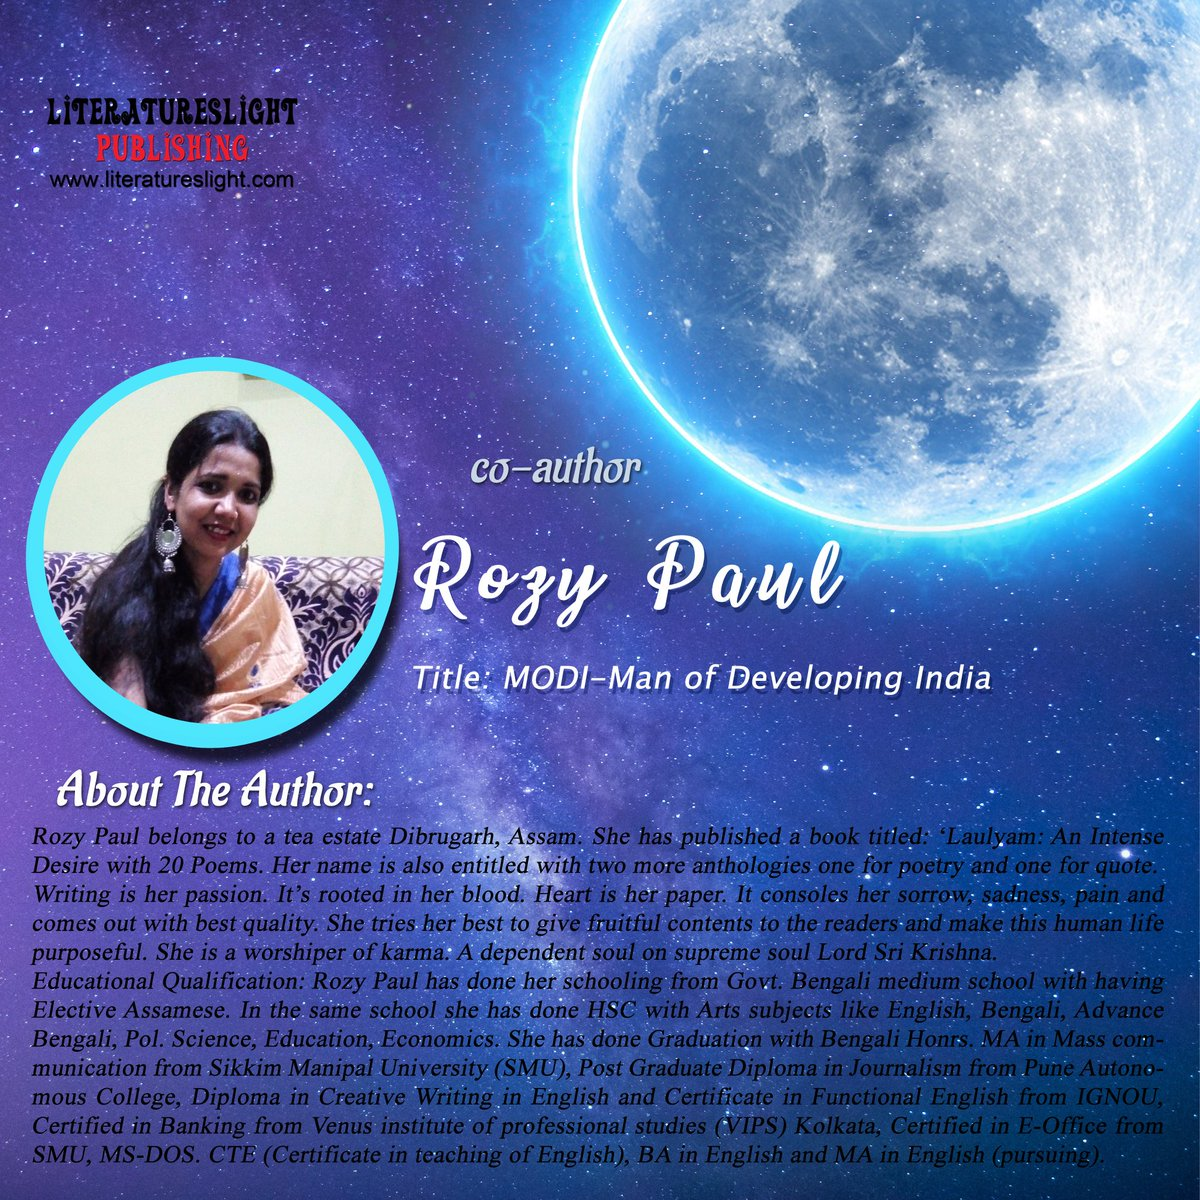 #literatureslight #poetryanthology #moonlight  Thank you for the contribution #RozyPaul #poetry #booklovers  #writeindia #newindianauthors #indianauthors #poetsofindia pic.twitter.com/e2qKwuo811